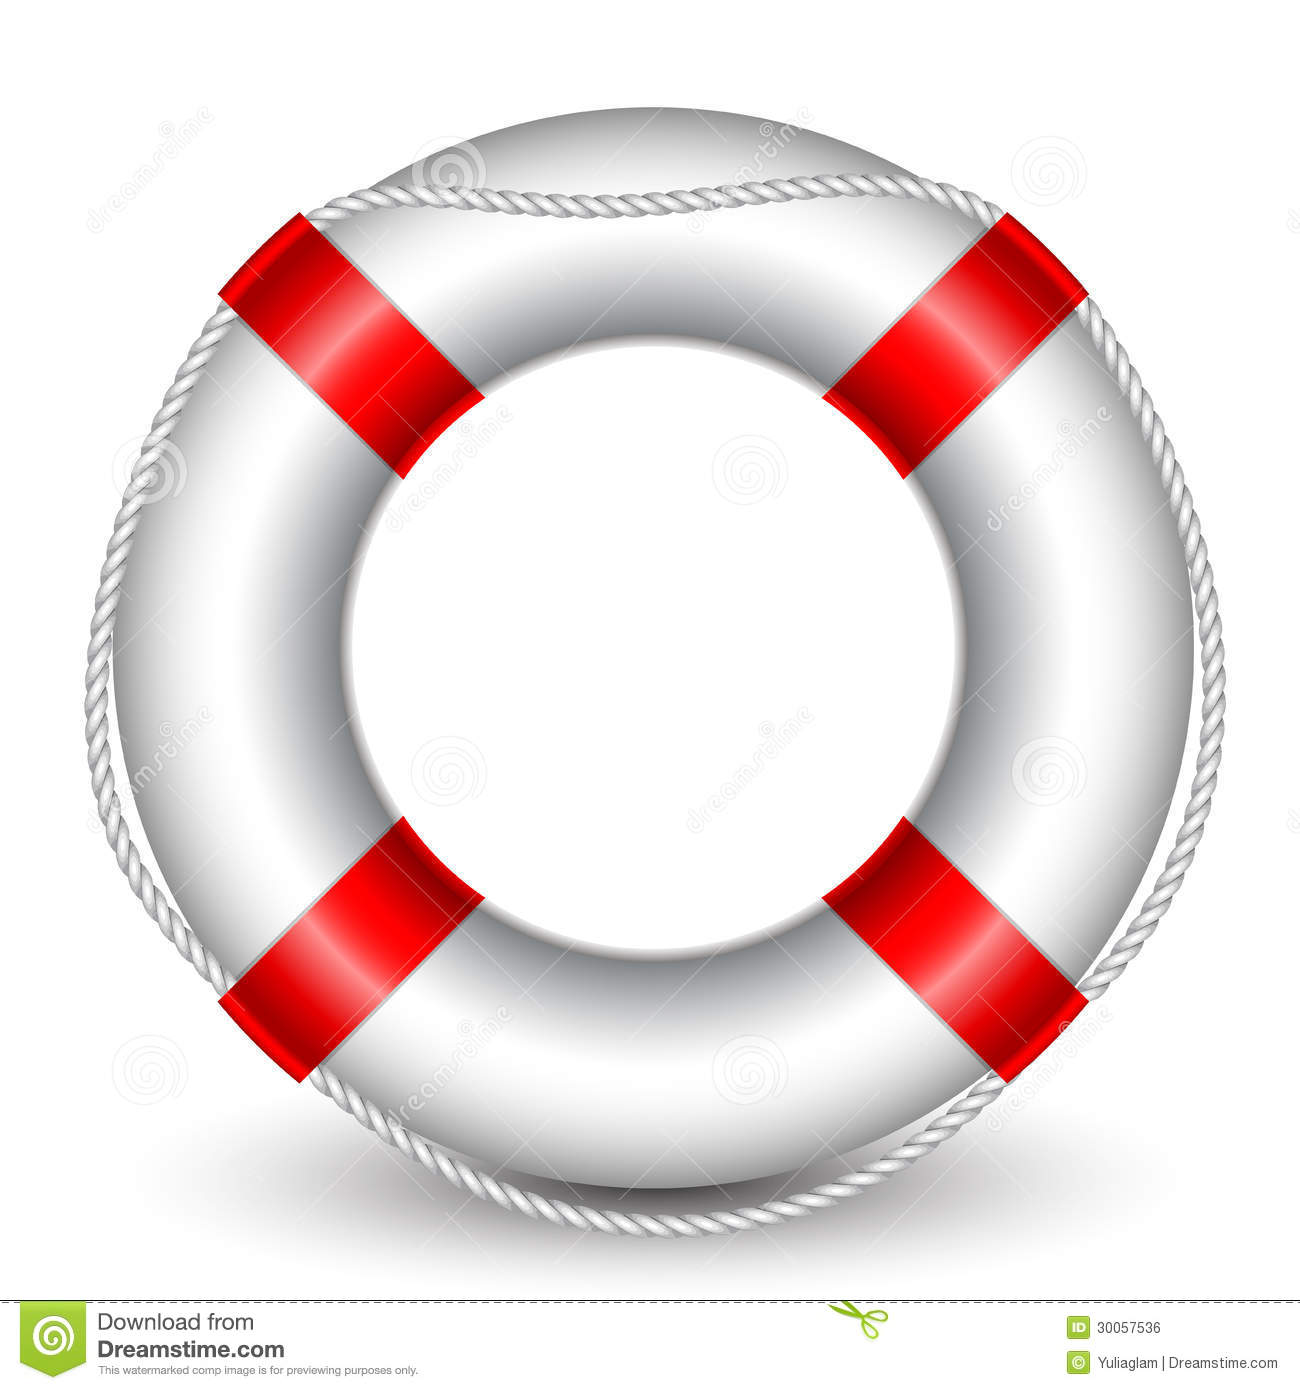 Life Buoy Royalty Free Stock Image - Image: 30057536